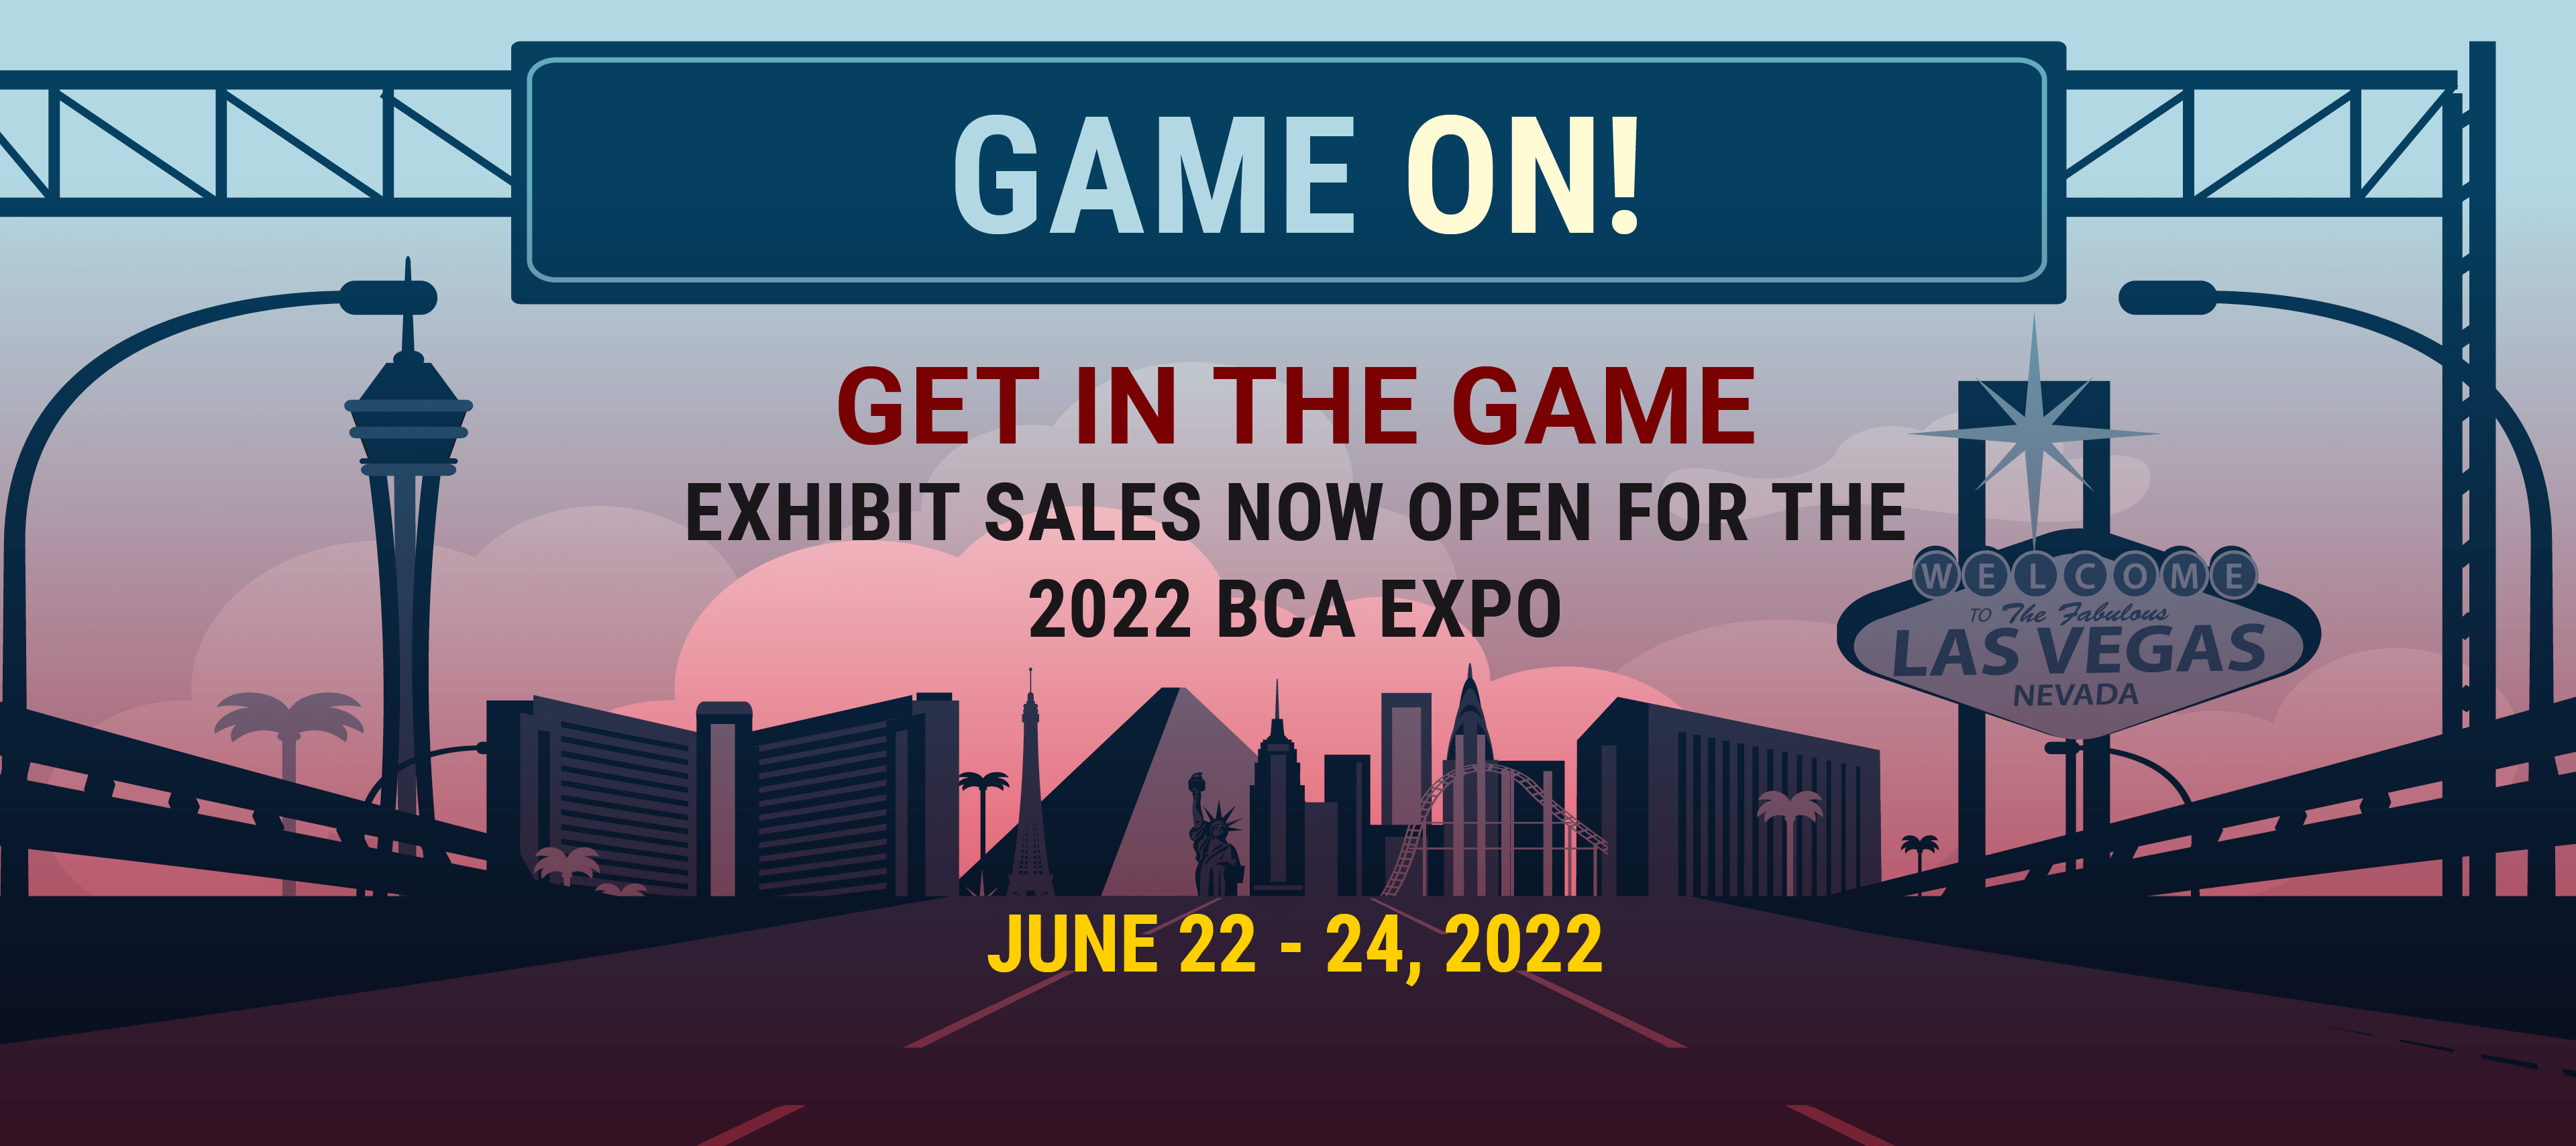 Get in the Game: Exhibit Sales Now Open for the 2022 BCA Expo | June 22 - 24, 2022